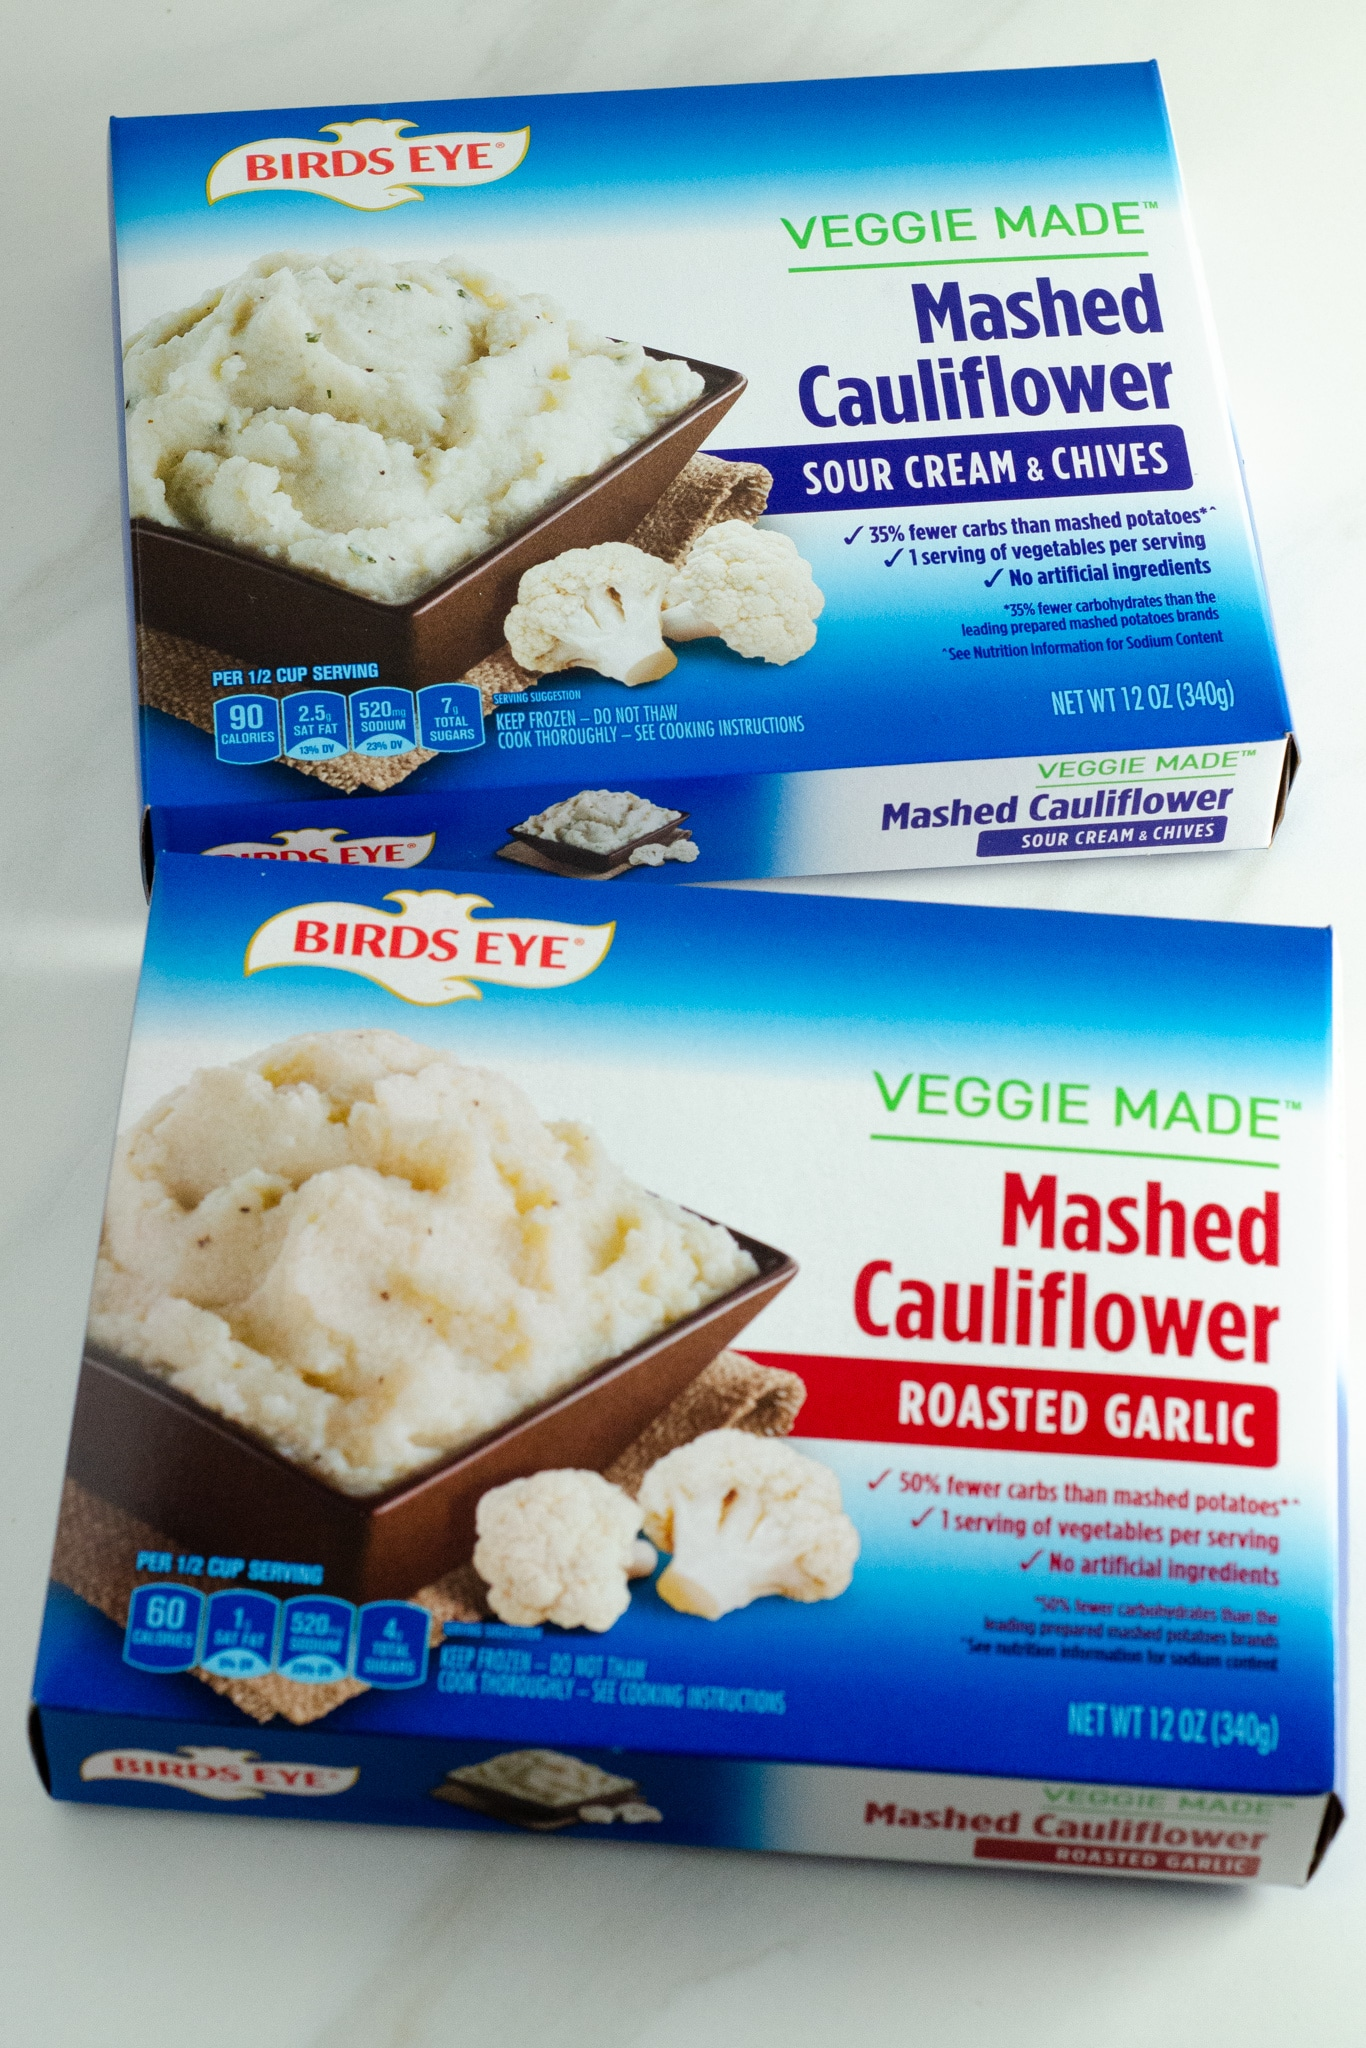 Birds Eye Mashed Cauliflower. March is National Frozen Food Month and what better way to celebrate it by shopping for your favorite frozen food brands at your local Harris Teeter. Grab this and other wonderful frozen food products in the freezer asile.